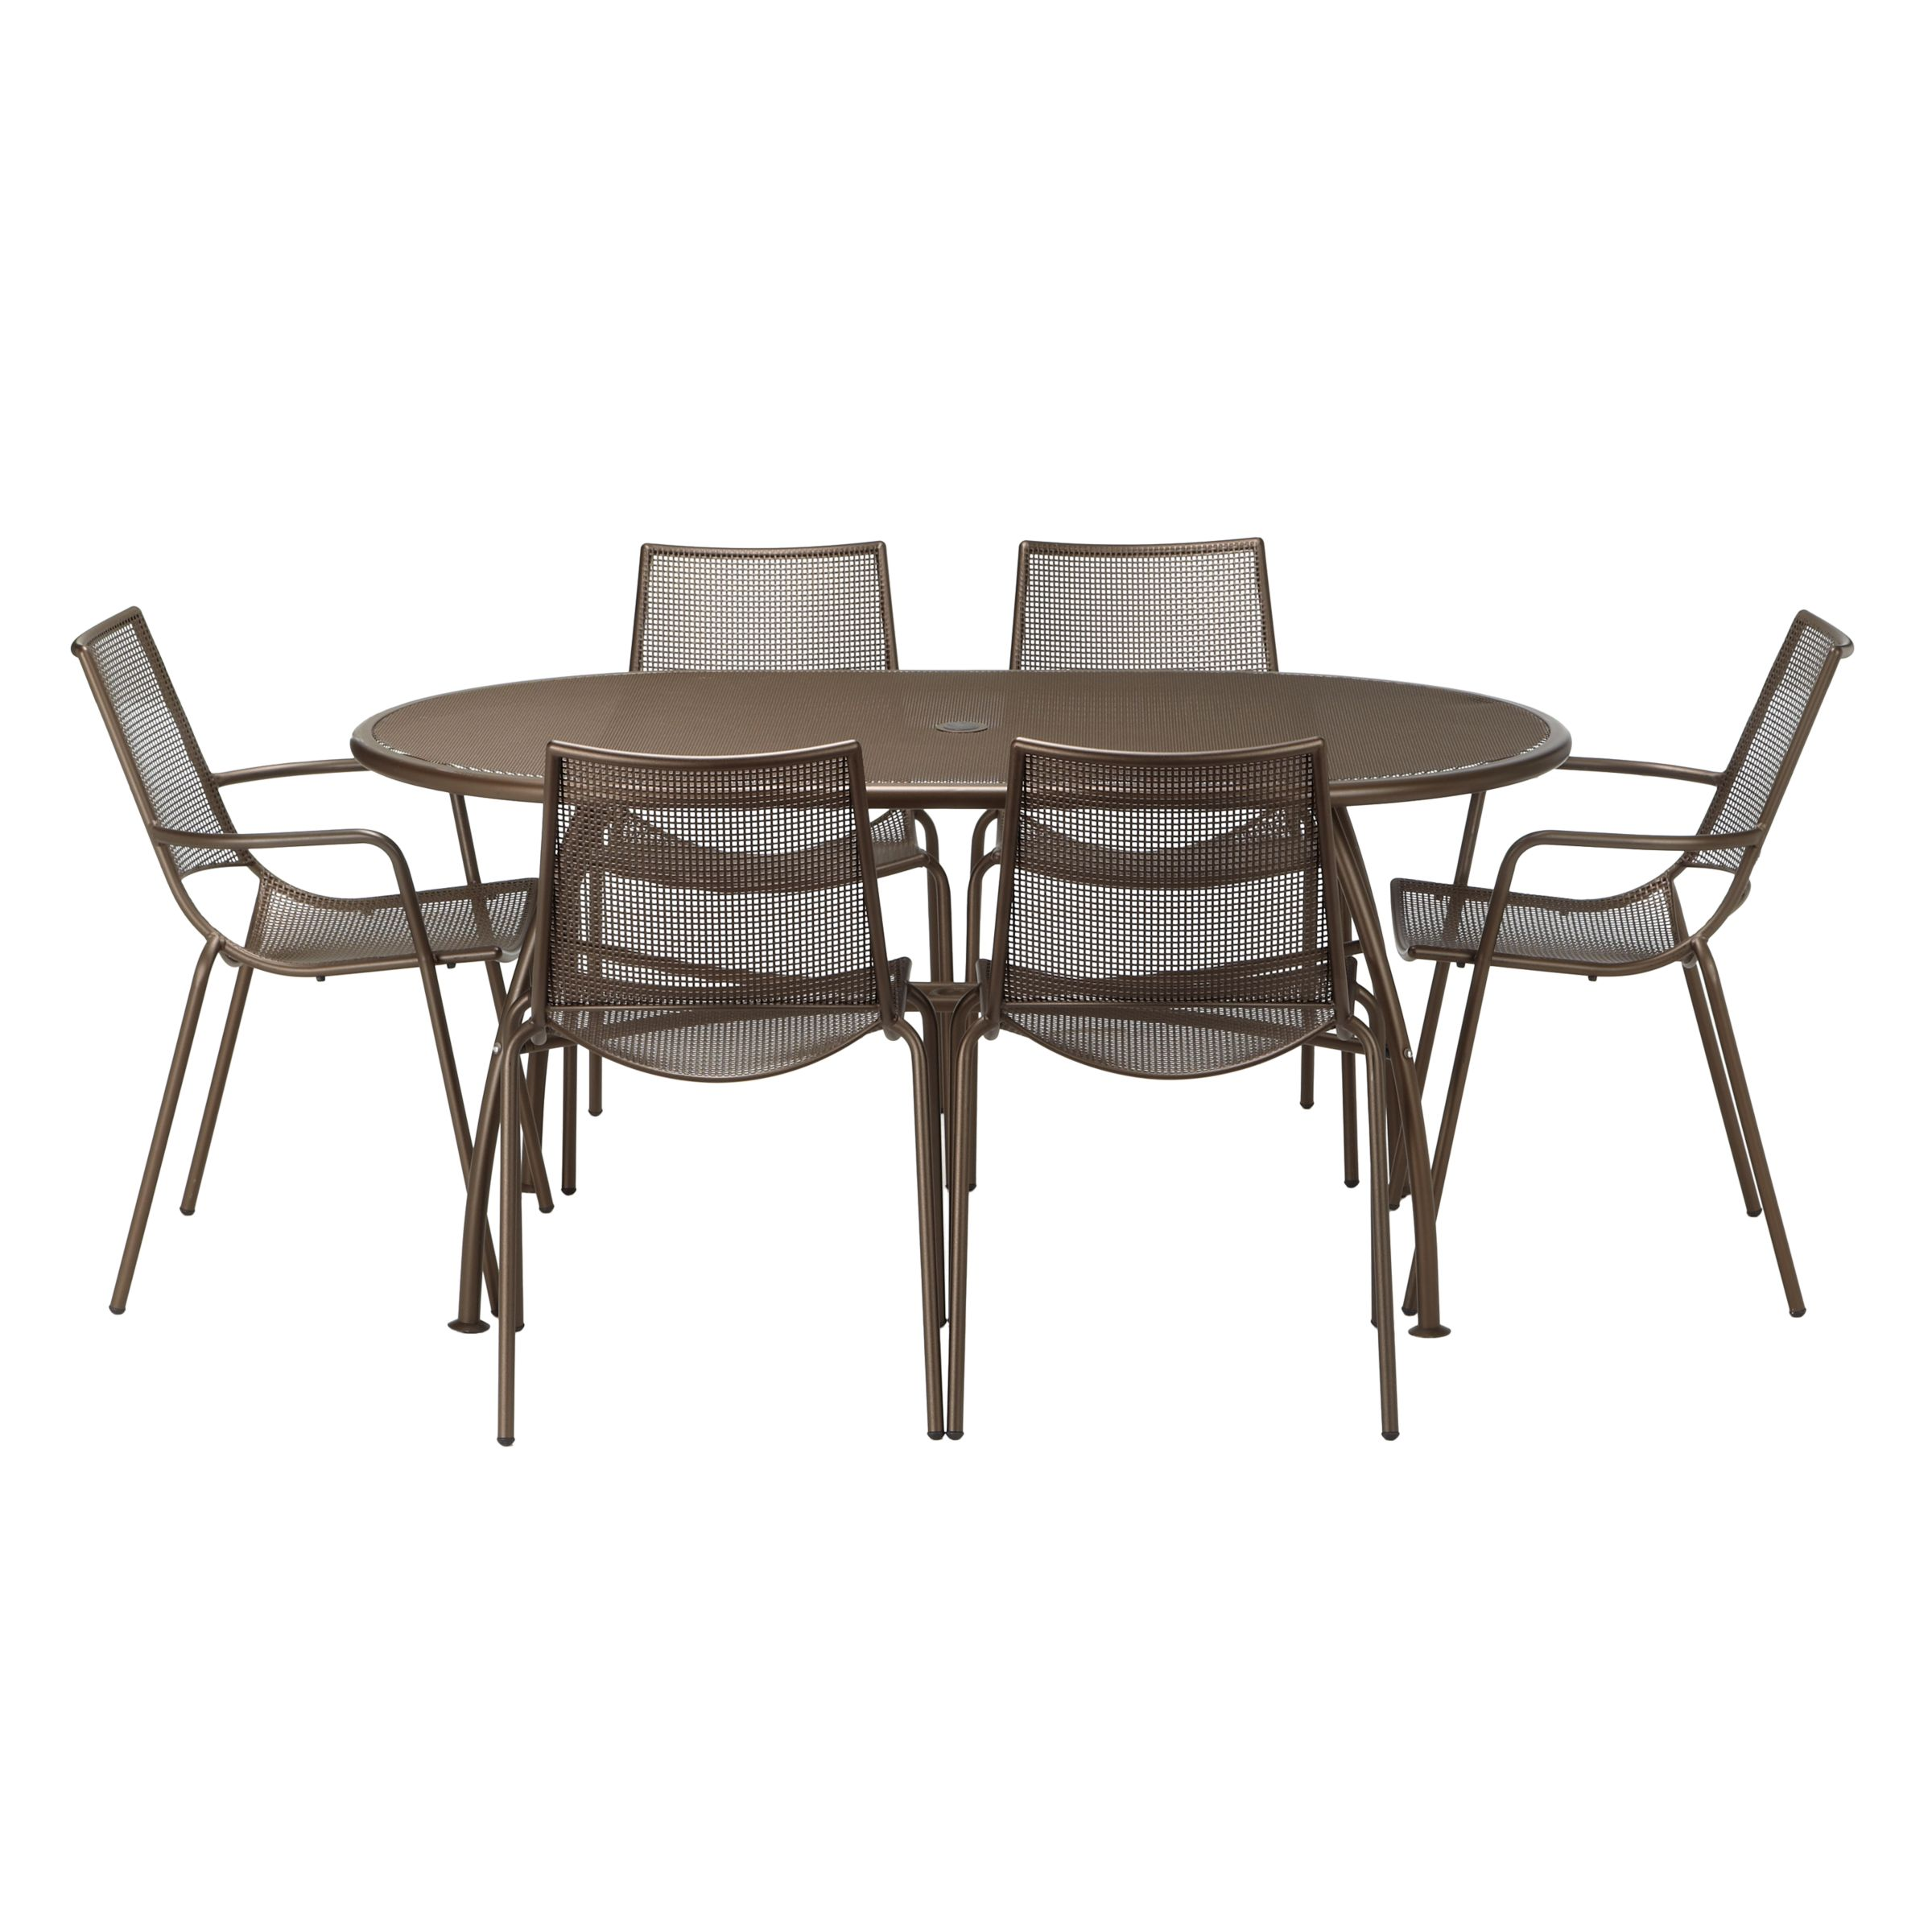 EMU Ala Mesh 6-Seater Garden Table and Chairs Dining Set, Bronze